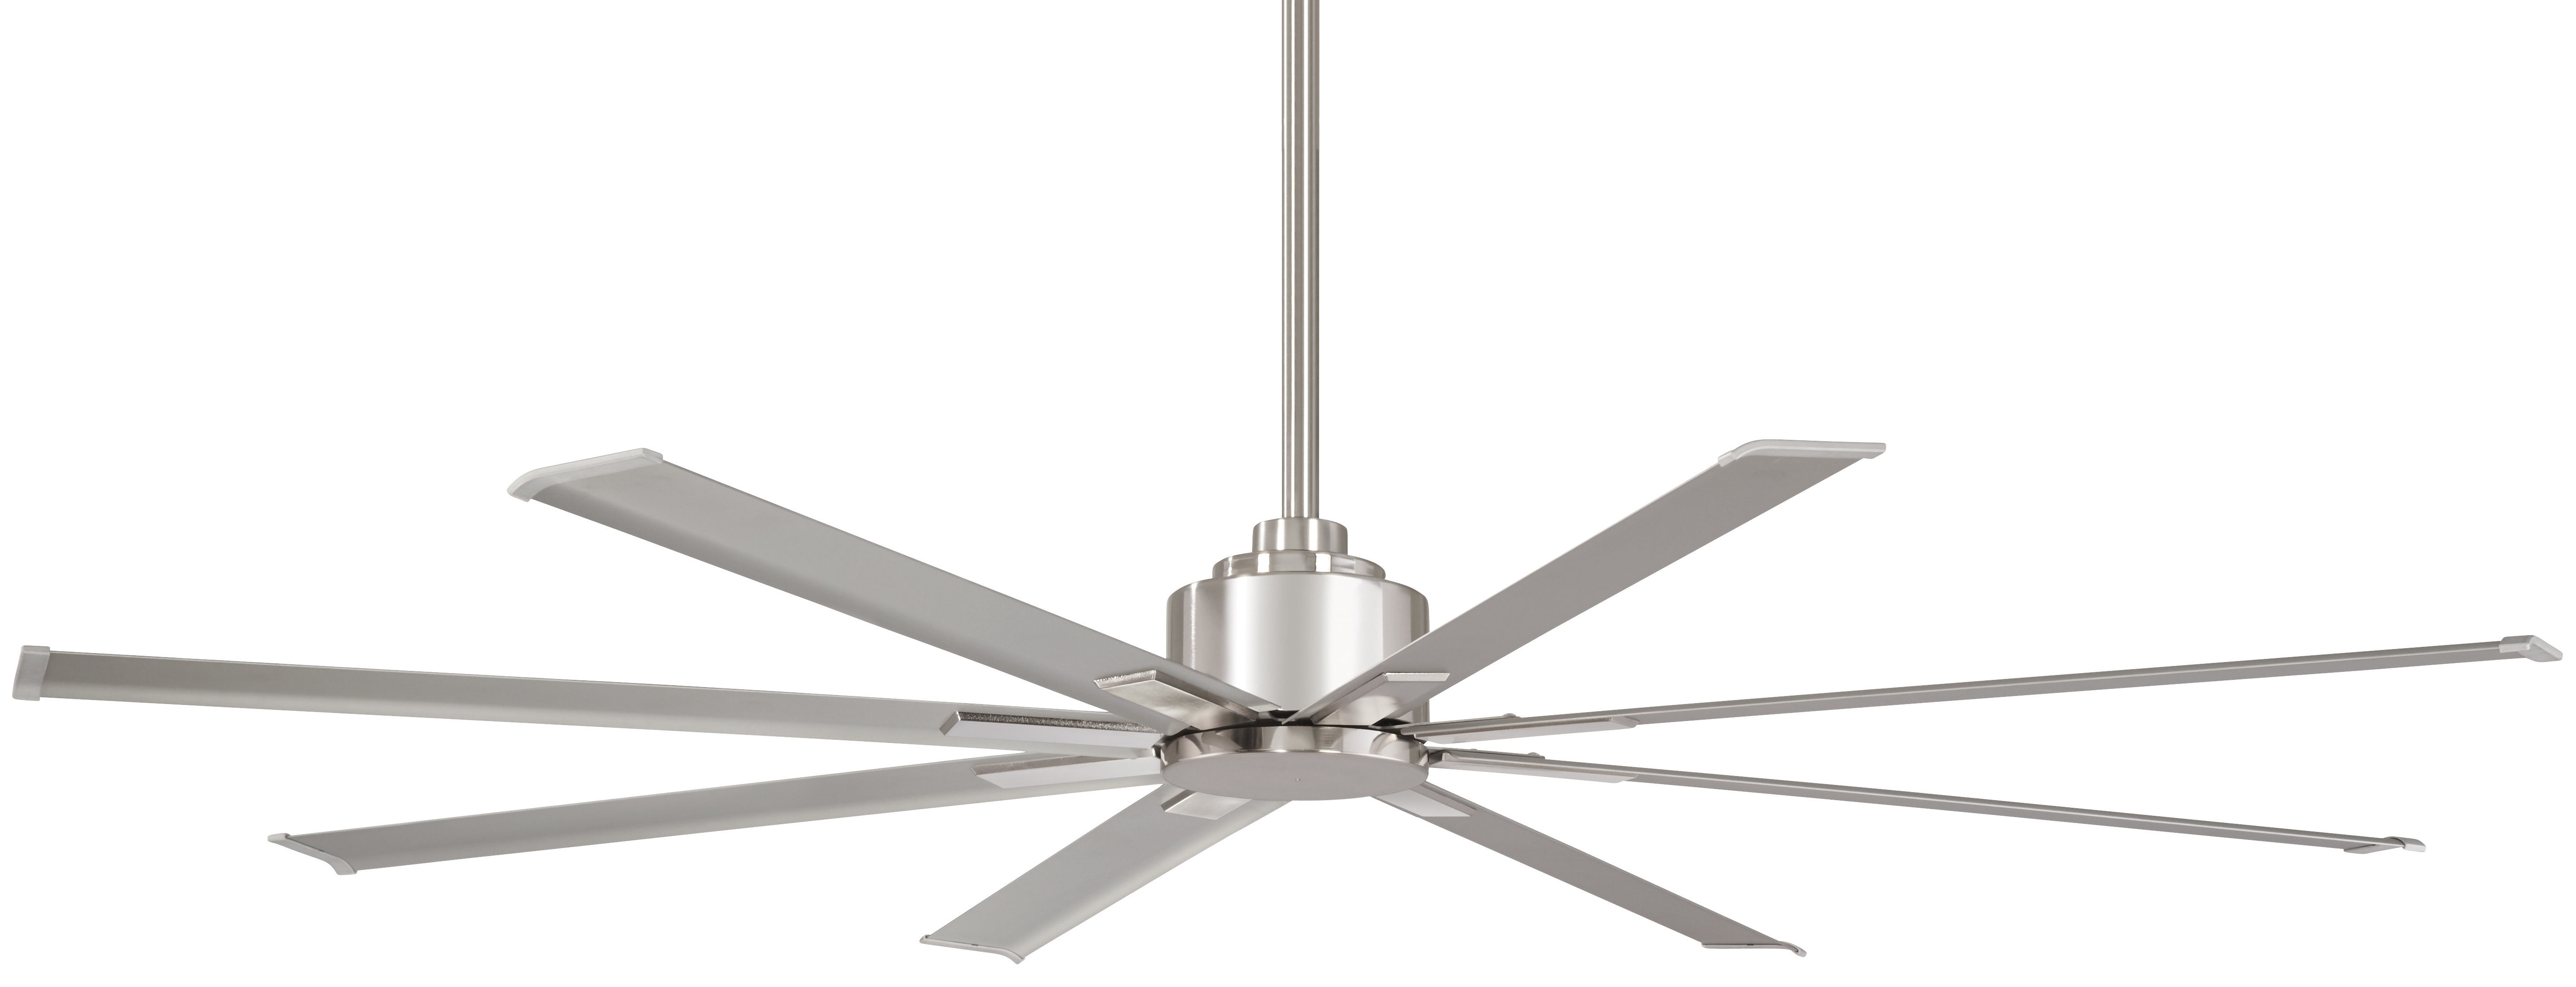 """Minka Aire 65"""" Xtreme 8 Blade Outdoor Ceiling Fan With Remote Within Fashionable Metal Outdoor Ceiling Fans With Light (View 3 of 20)"""